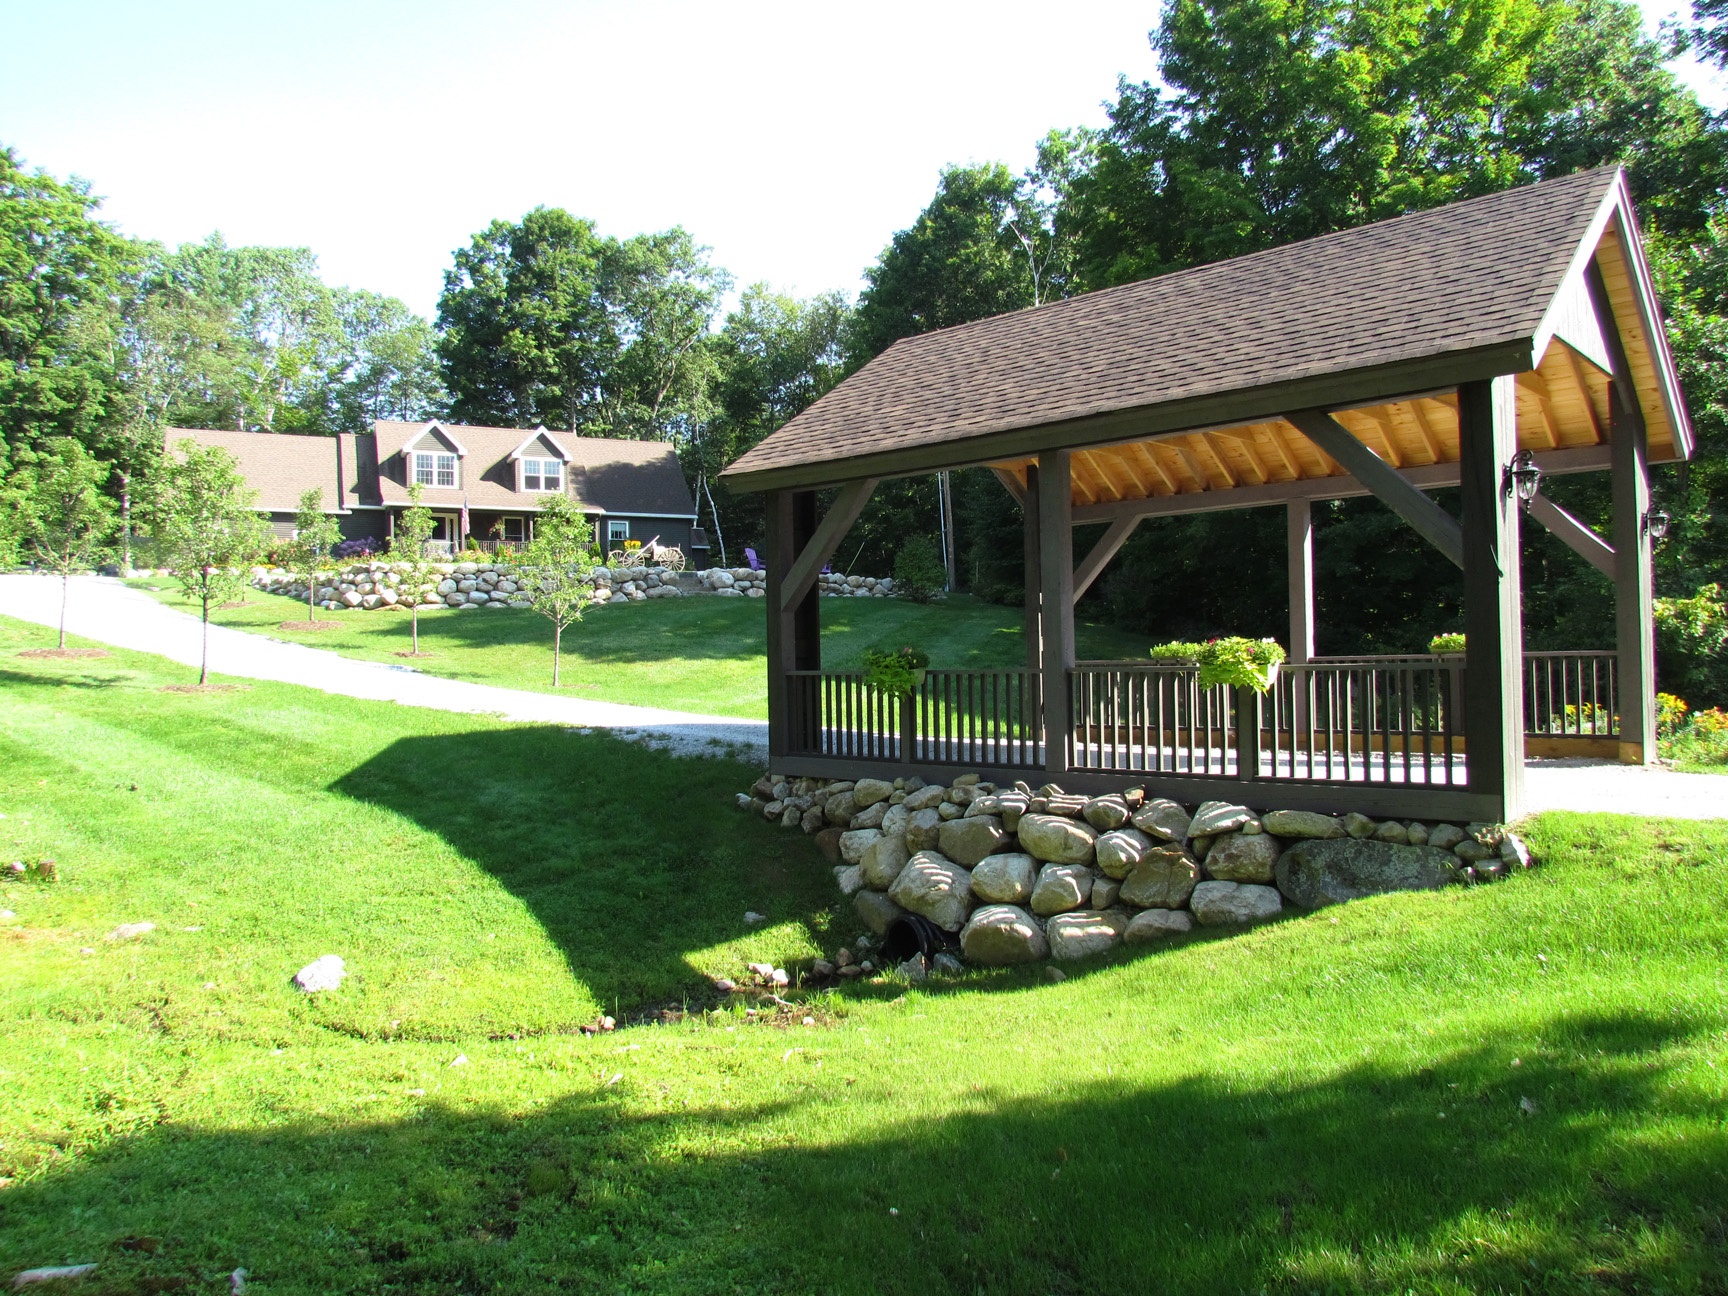 Covered bridges say welcome home by Carptner & Costin